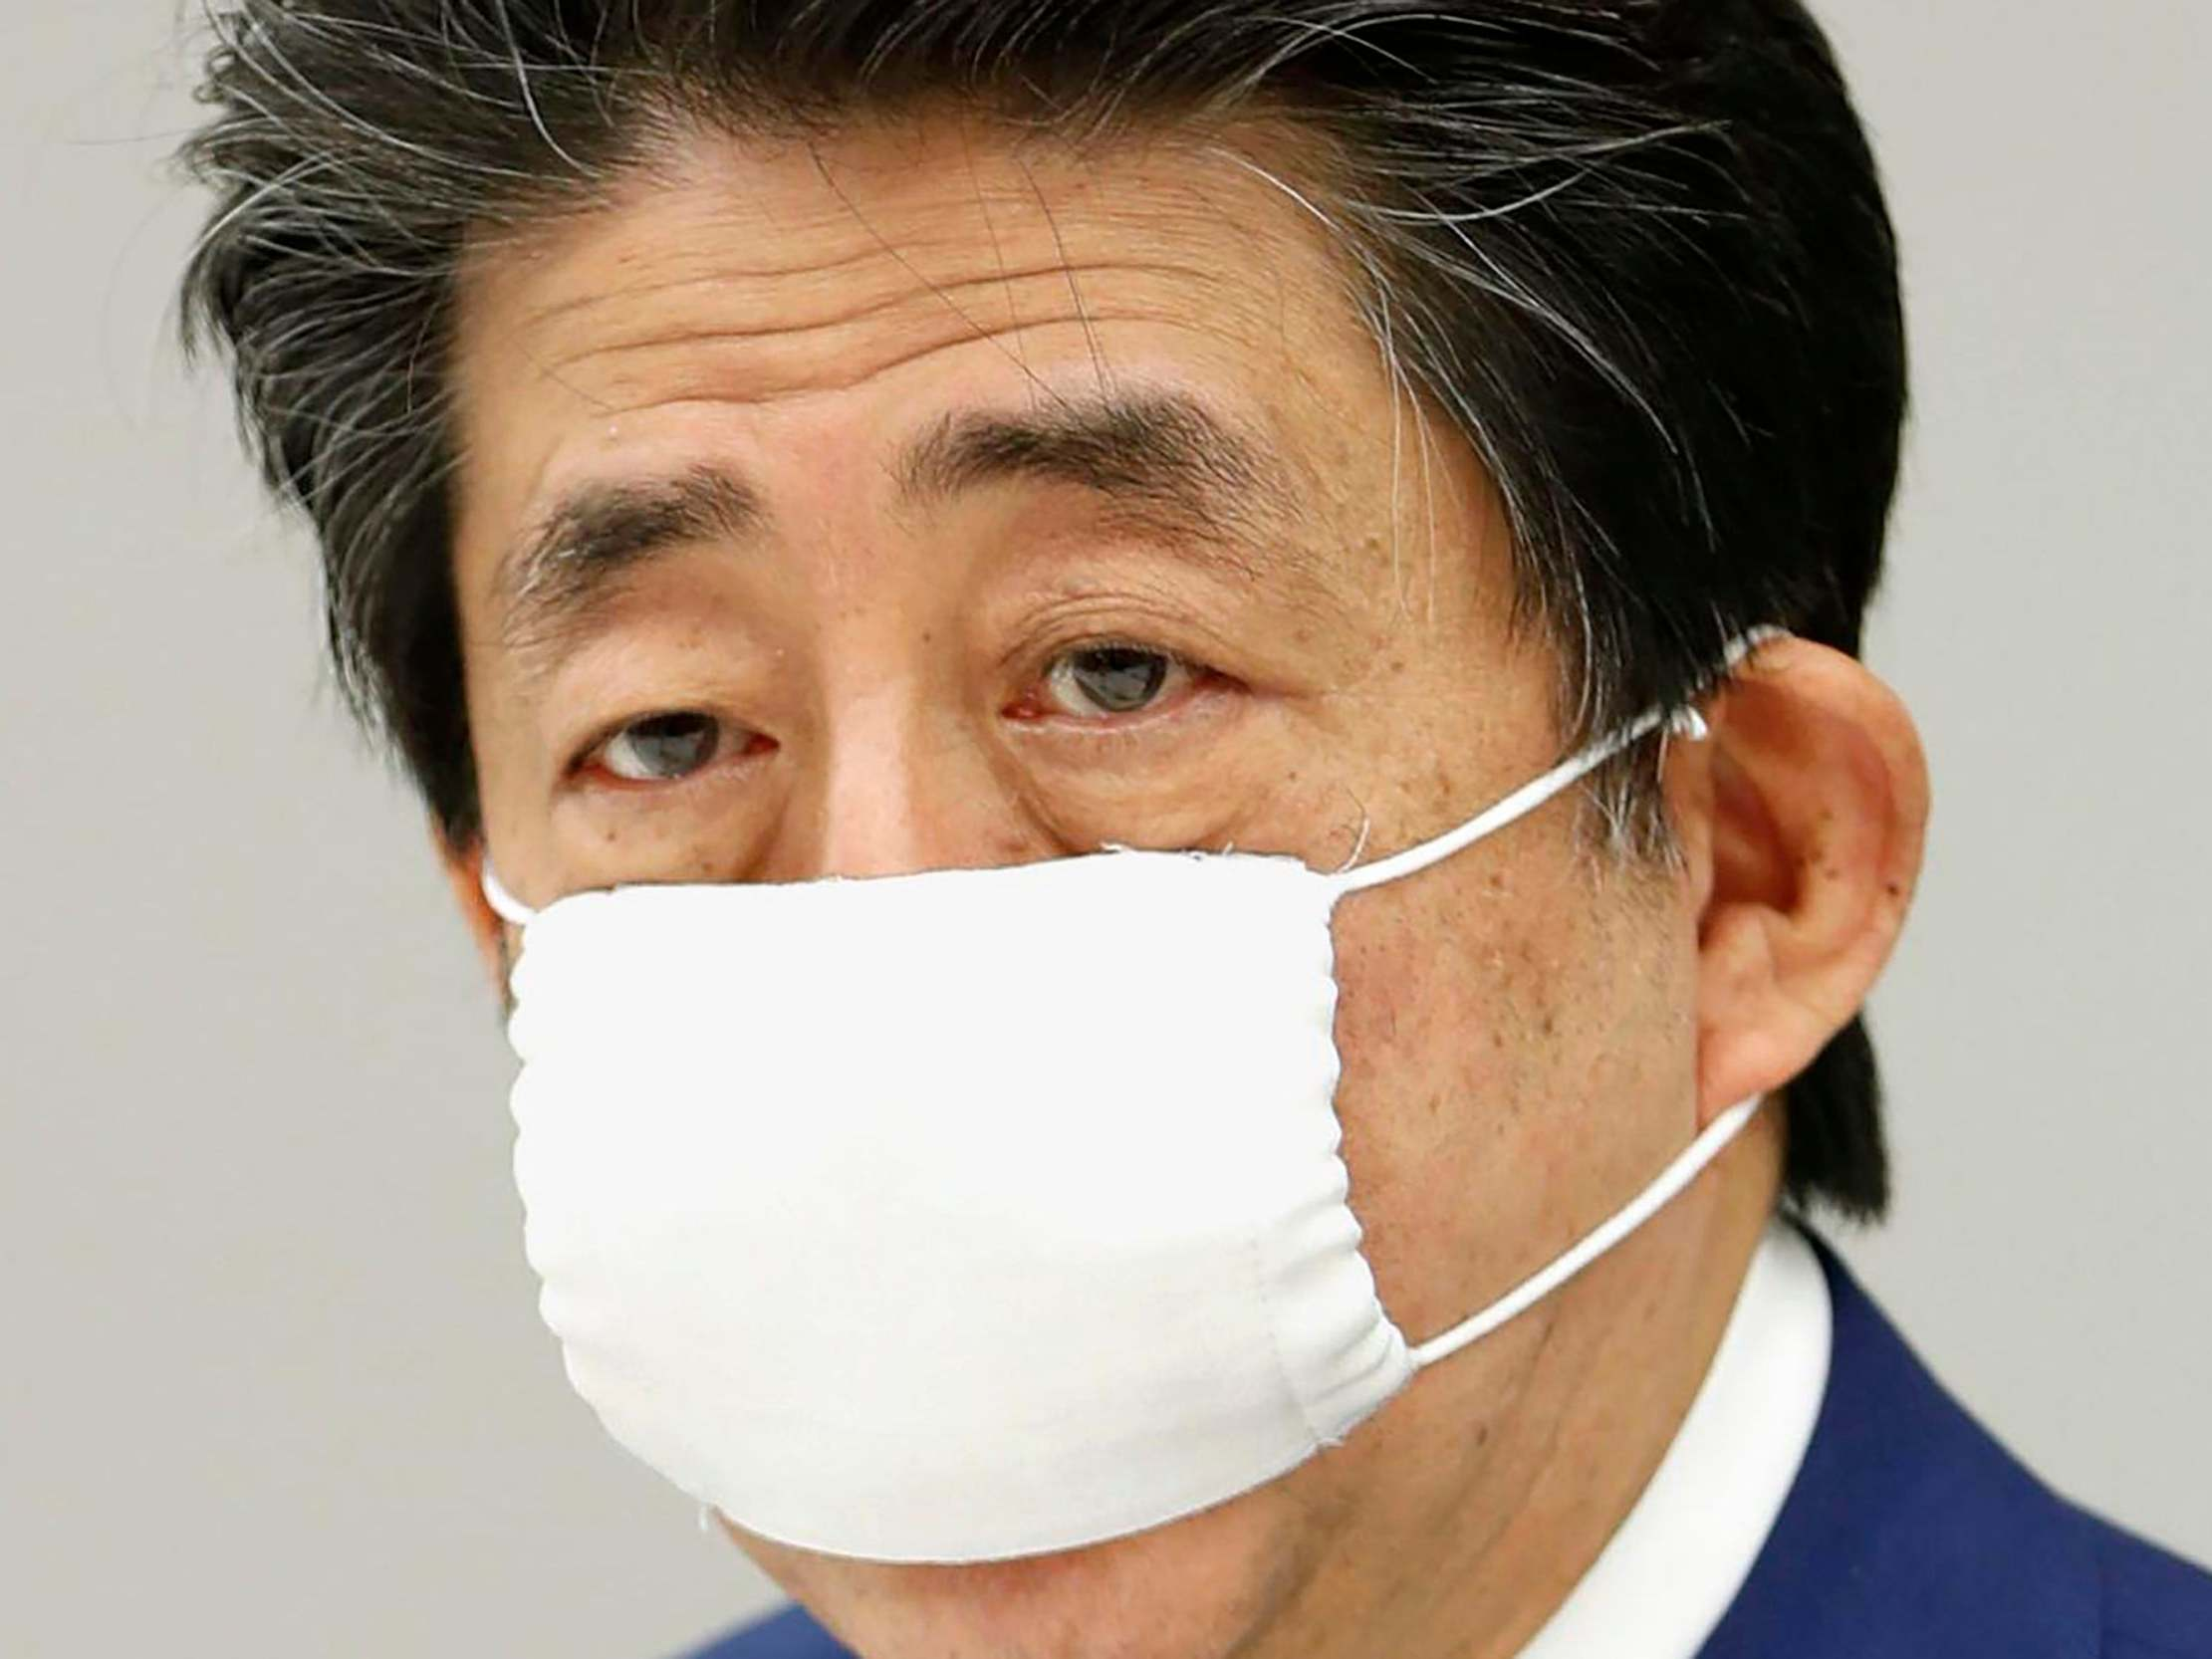 Coronavirus: Japan PM irks public with 'stay at home' video lounging on sofa thumbnail